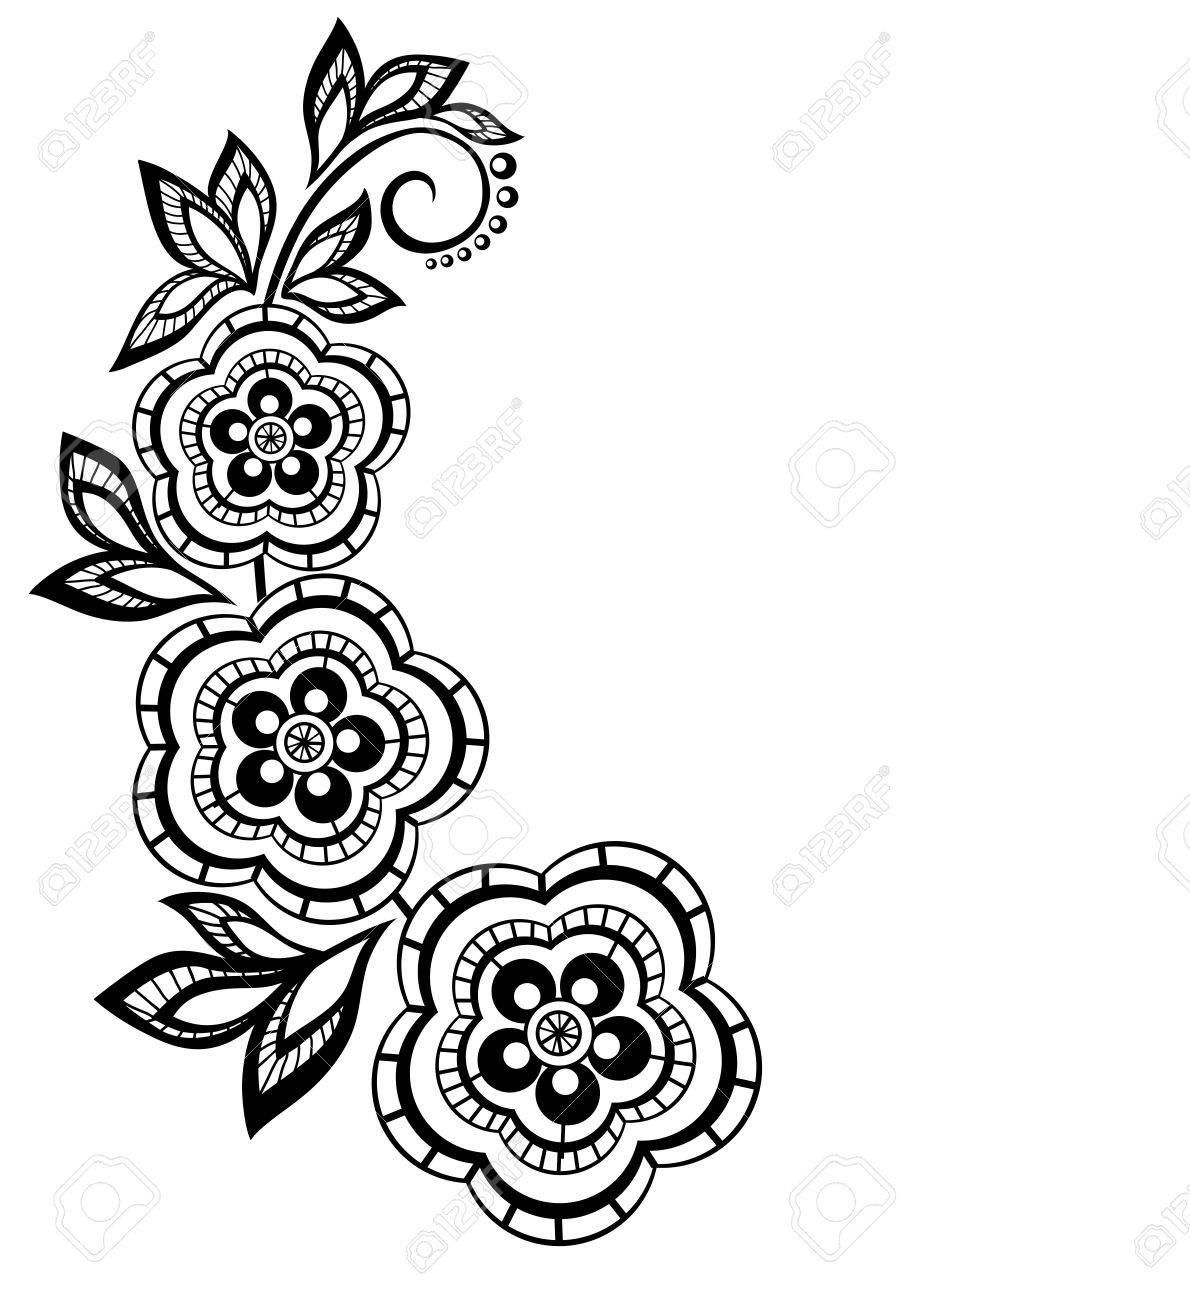 Isolated branch with flowers design element With the effect of lace eyelets Many similarities in the profile of the artist - 20314196